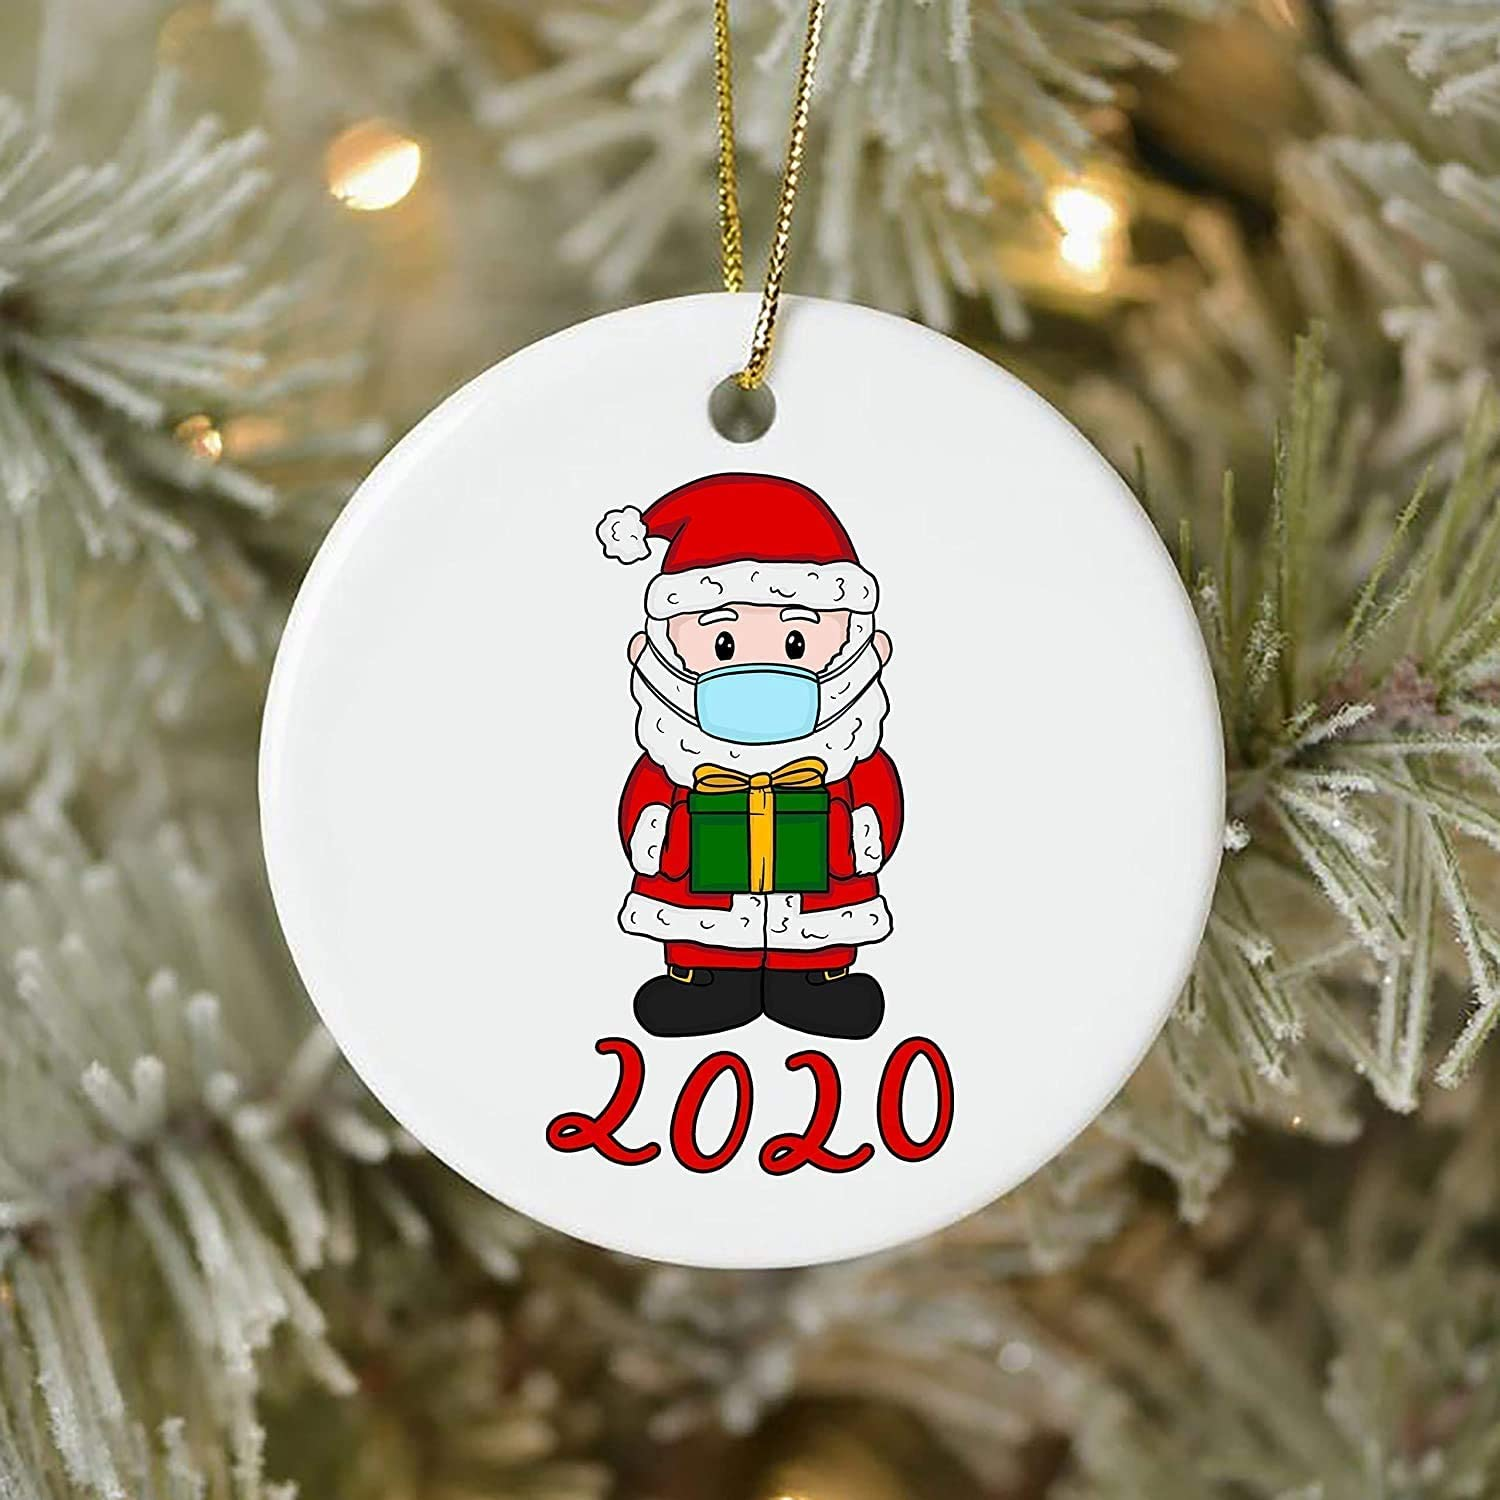 🎄2020 Annual Events Christmas Ornament🎄6